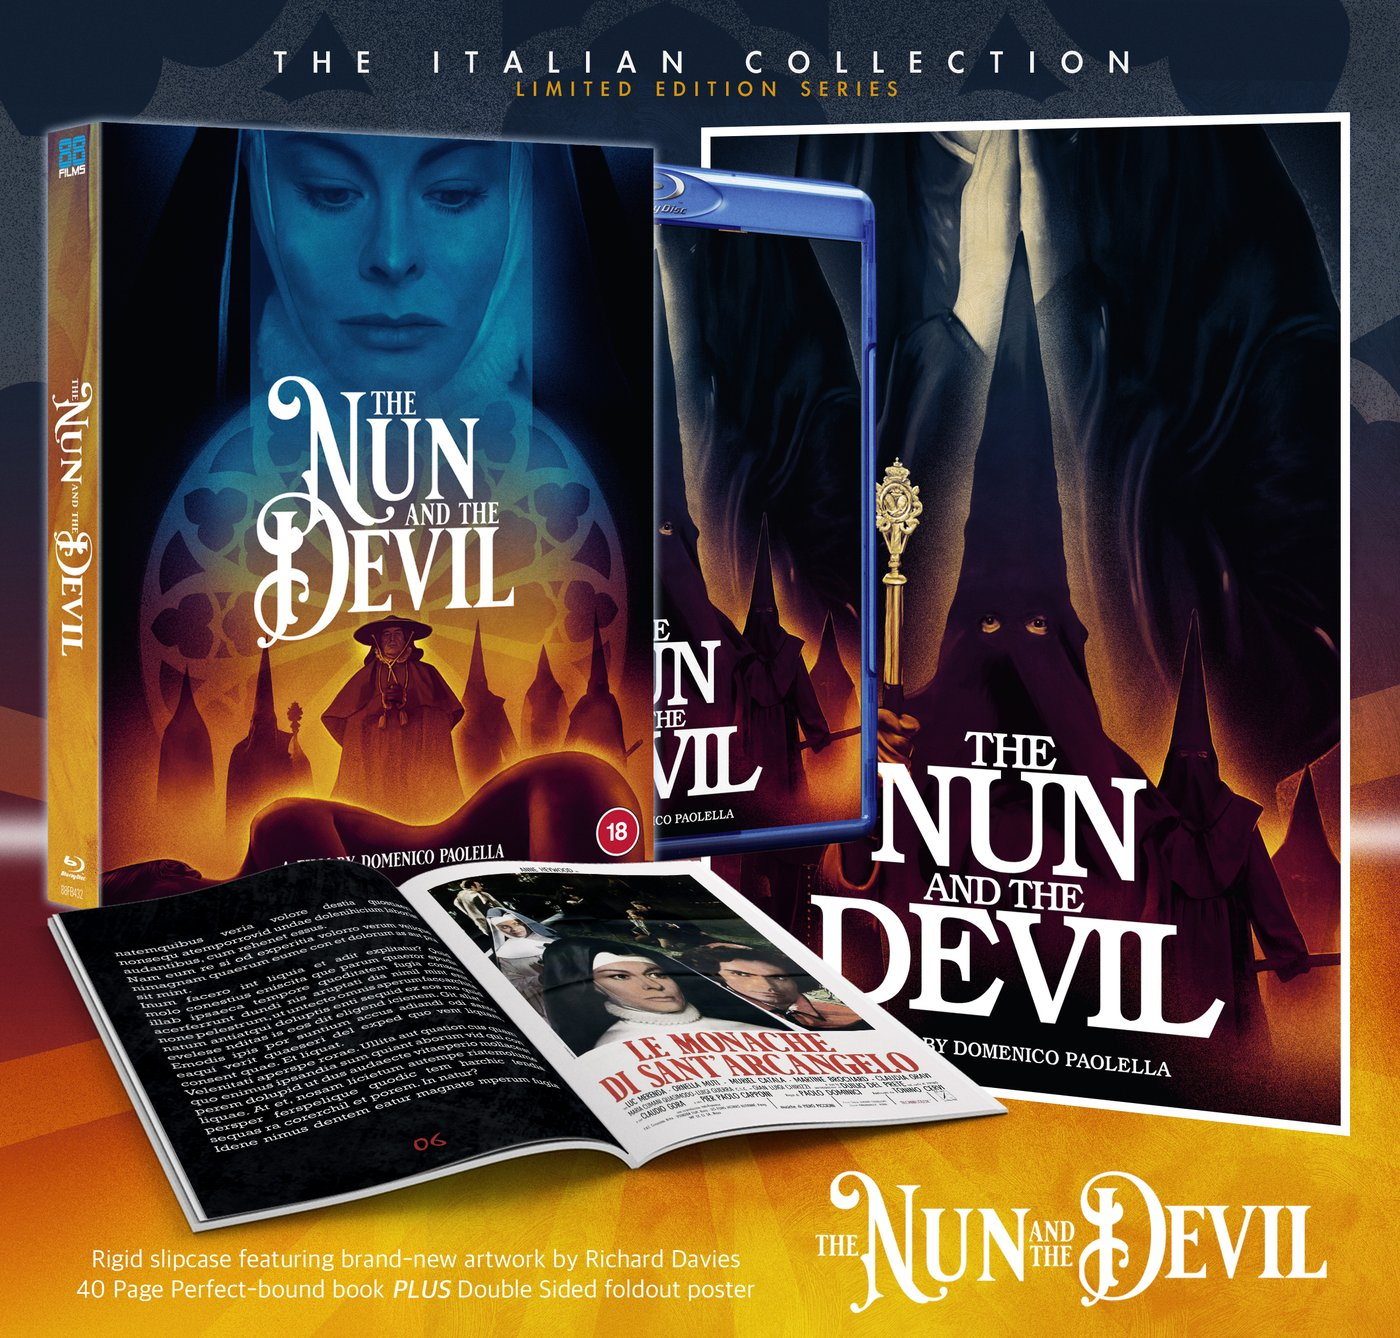 THE VIOLENT PROFESSIONALS & THE NUN AND THE DEVIL Available Now on Limited Edition Blu-ray from 88 Films